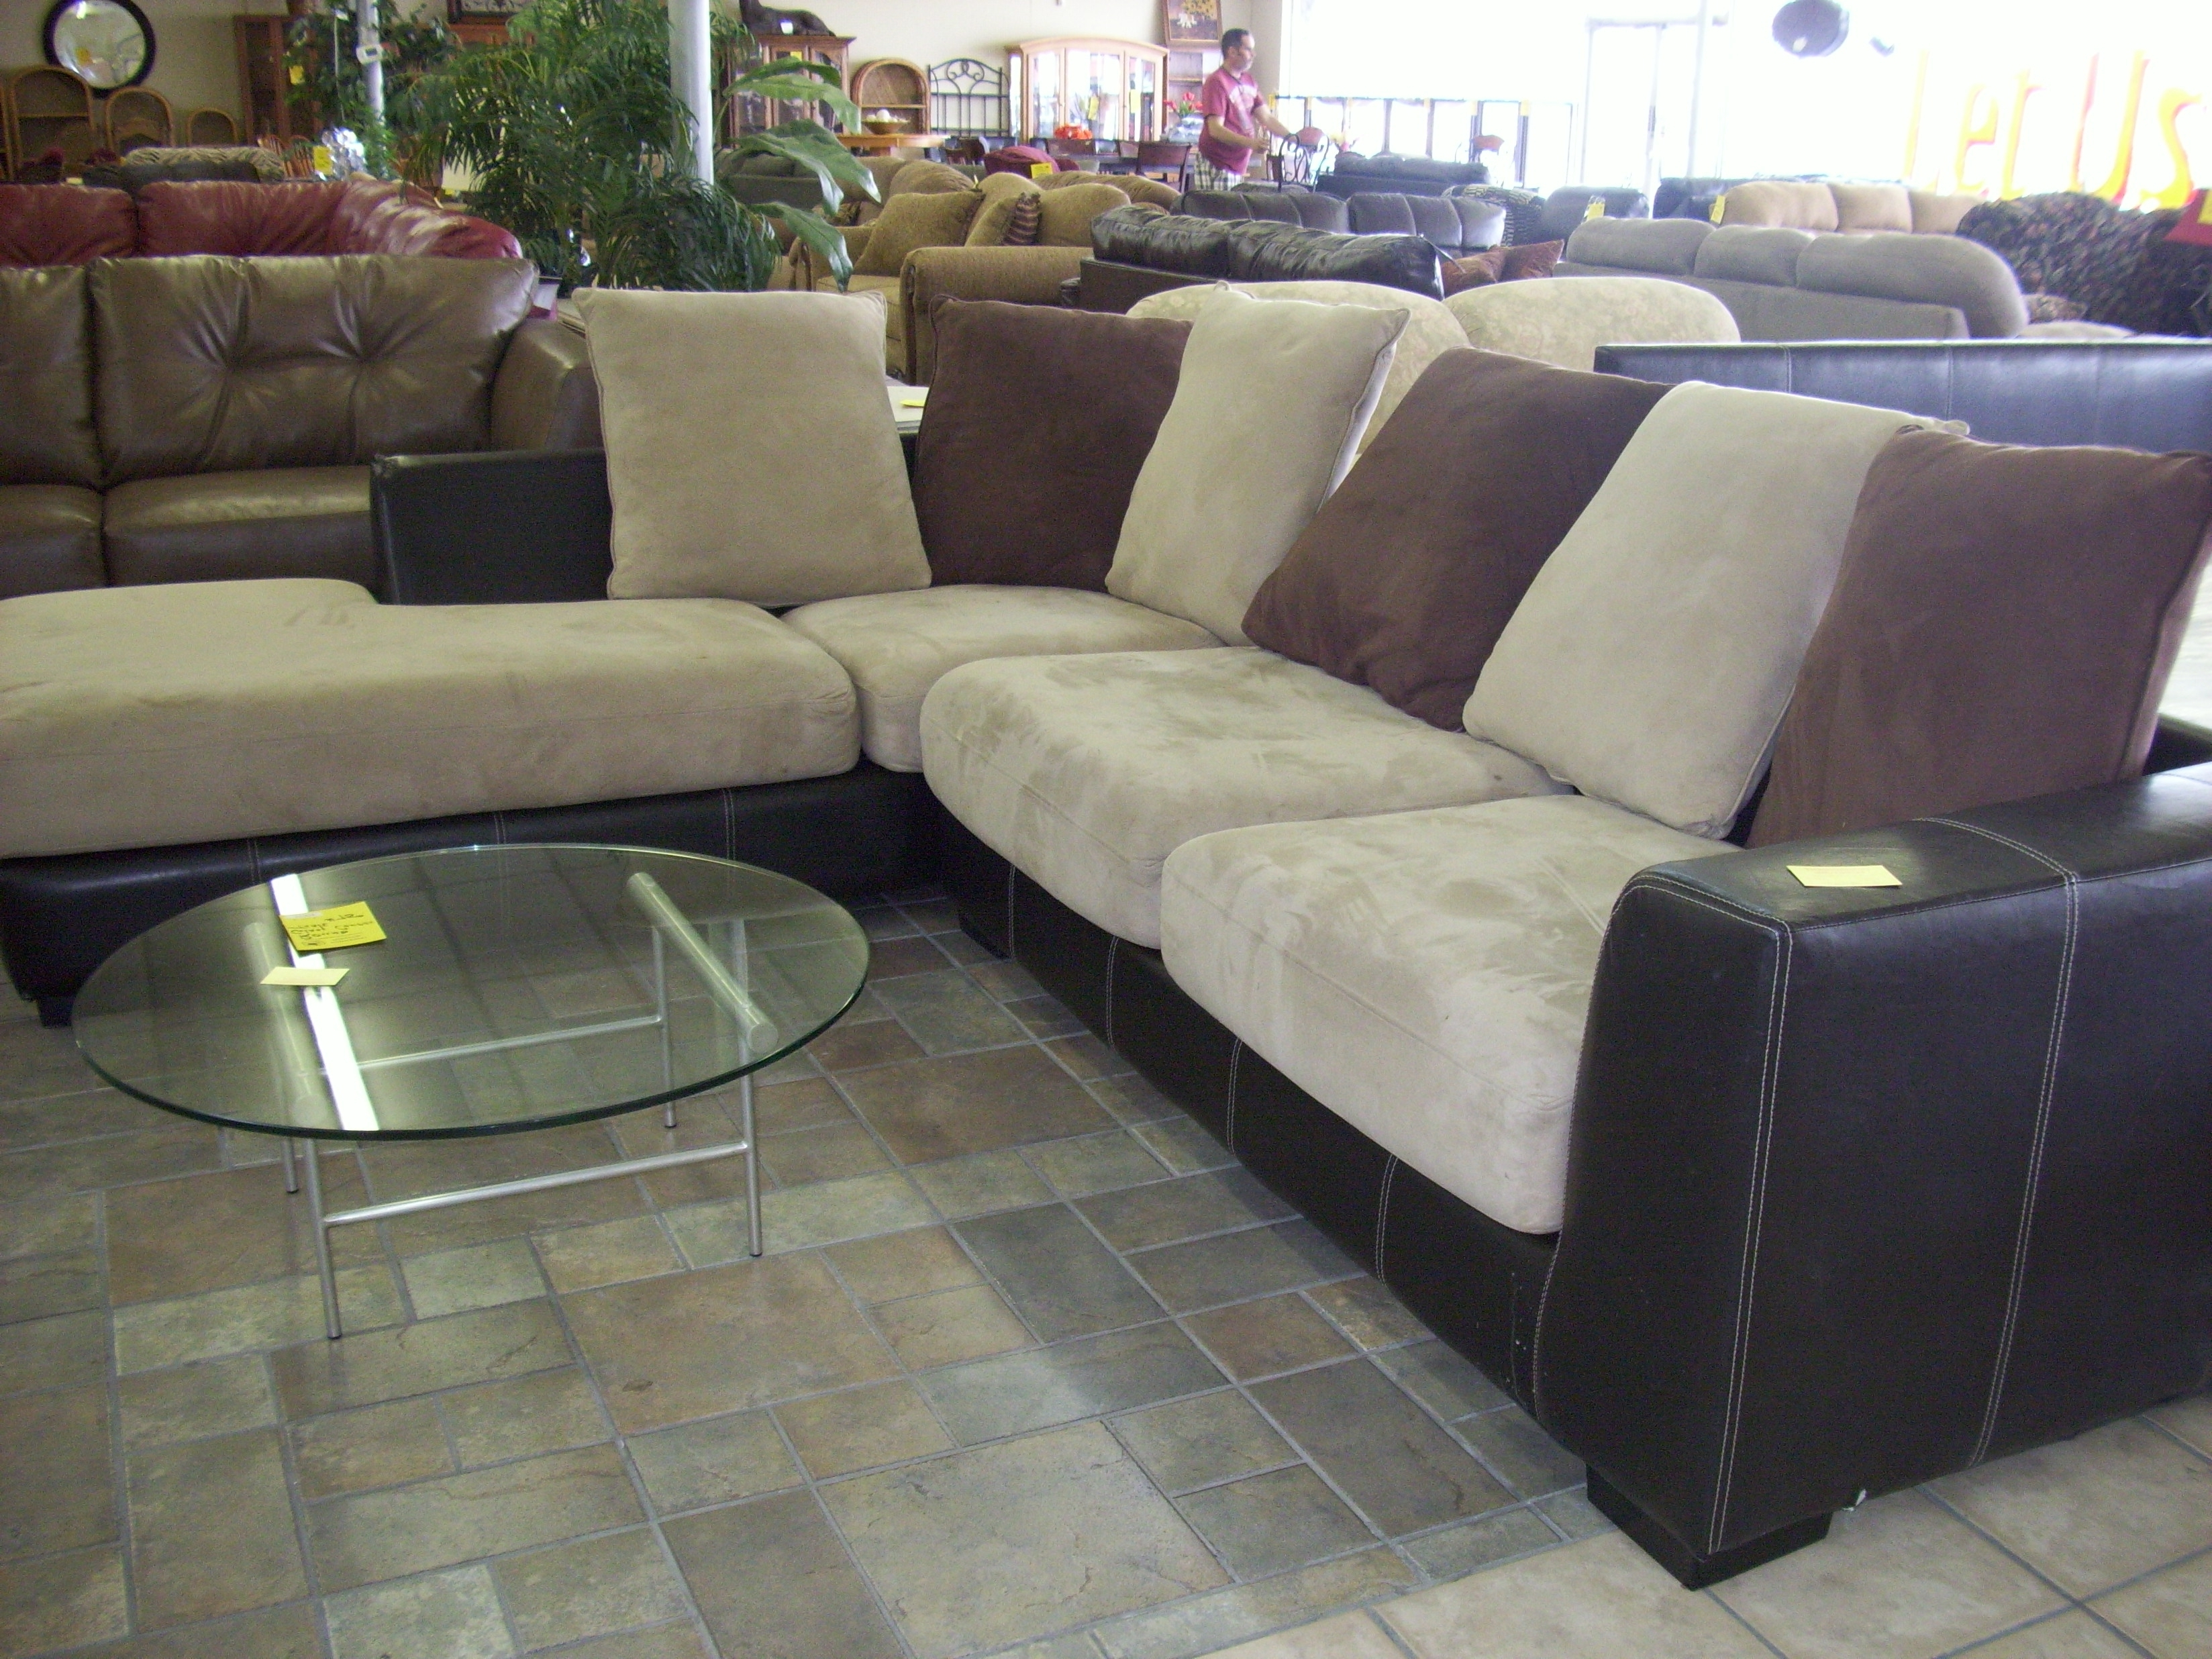 Latest Leather And Suede Sectional Couches • Leather Sofa Regarding Leather And Suede Sectional Sofas (View 4 of 15)